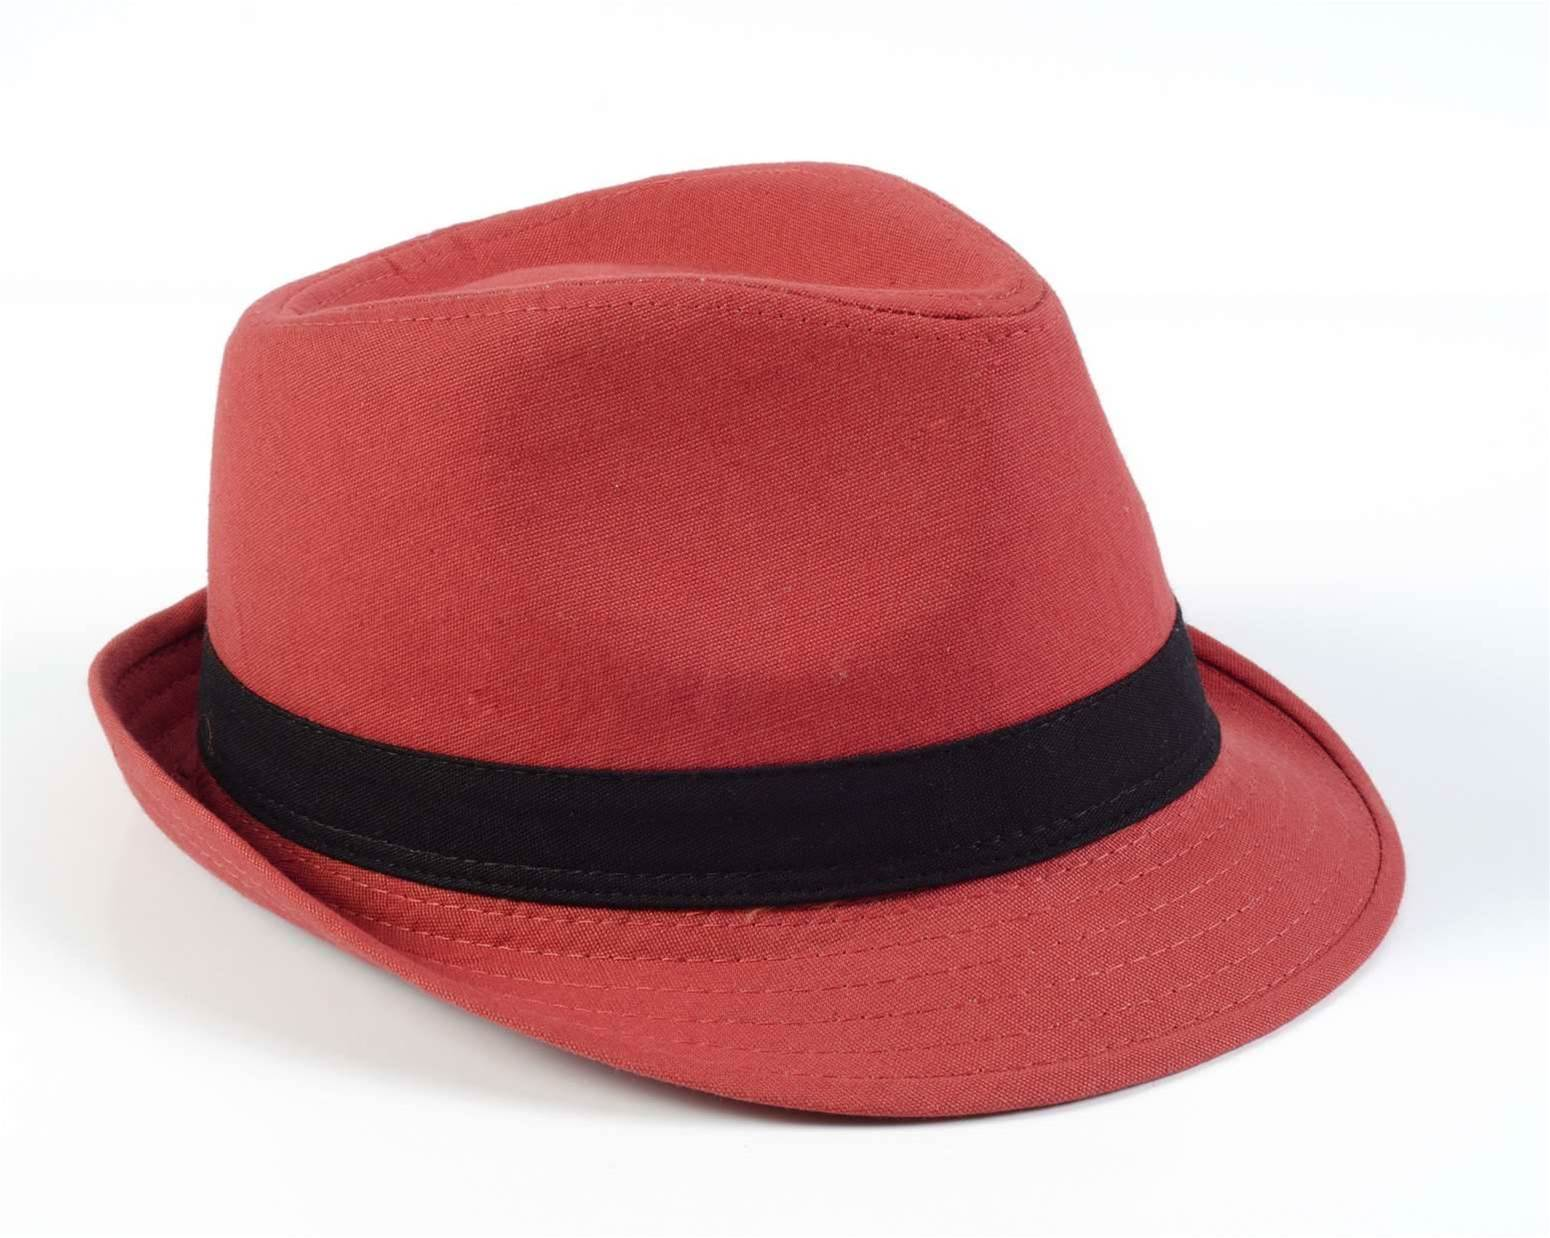 IBM buys Red Hat in US$34bn straight cash deal